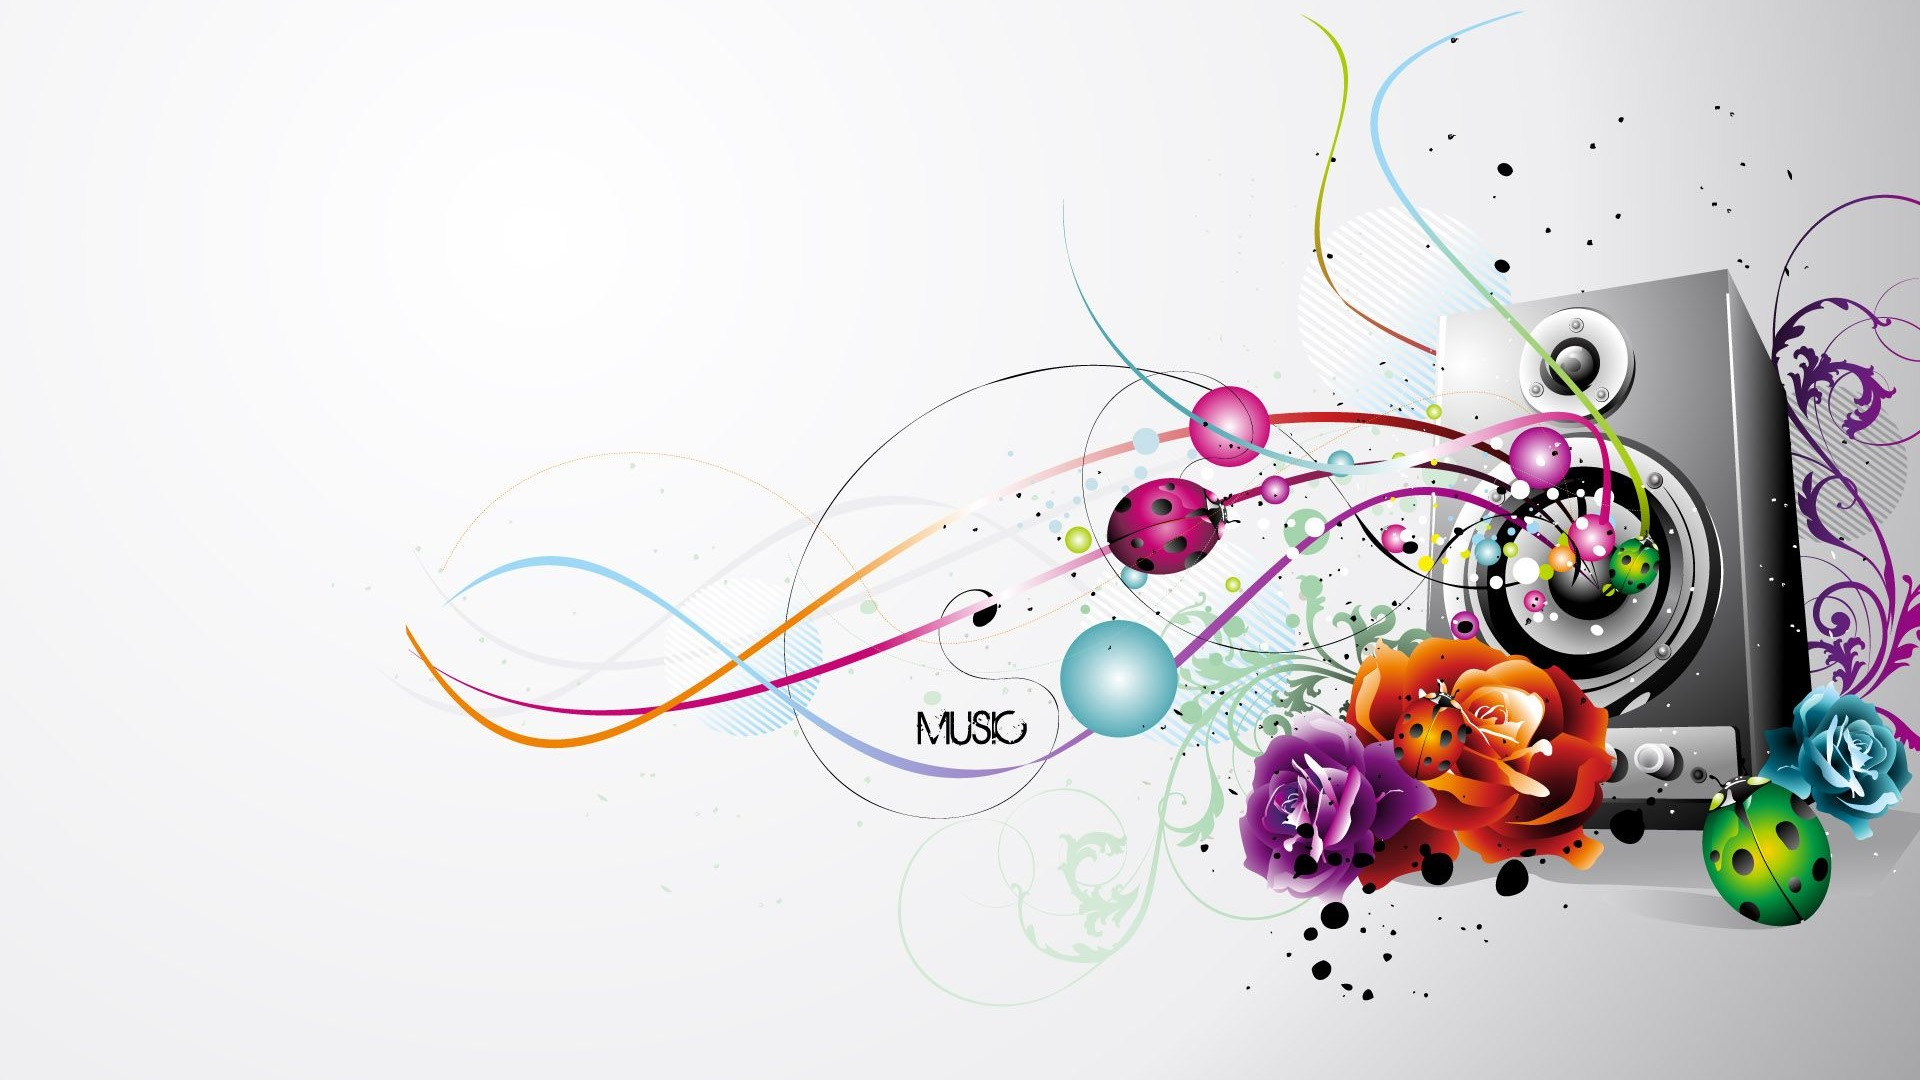 Music_theme_Colorful_HD_Wallpaper_11_1920x1080